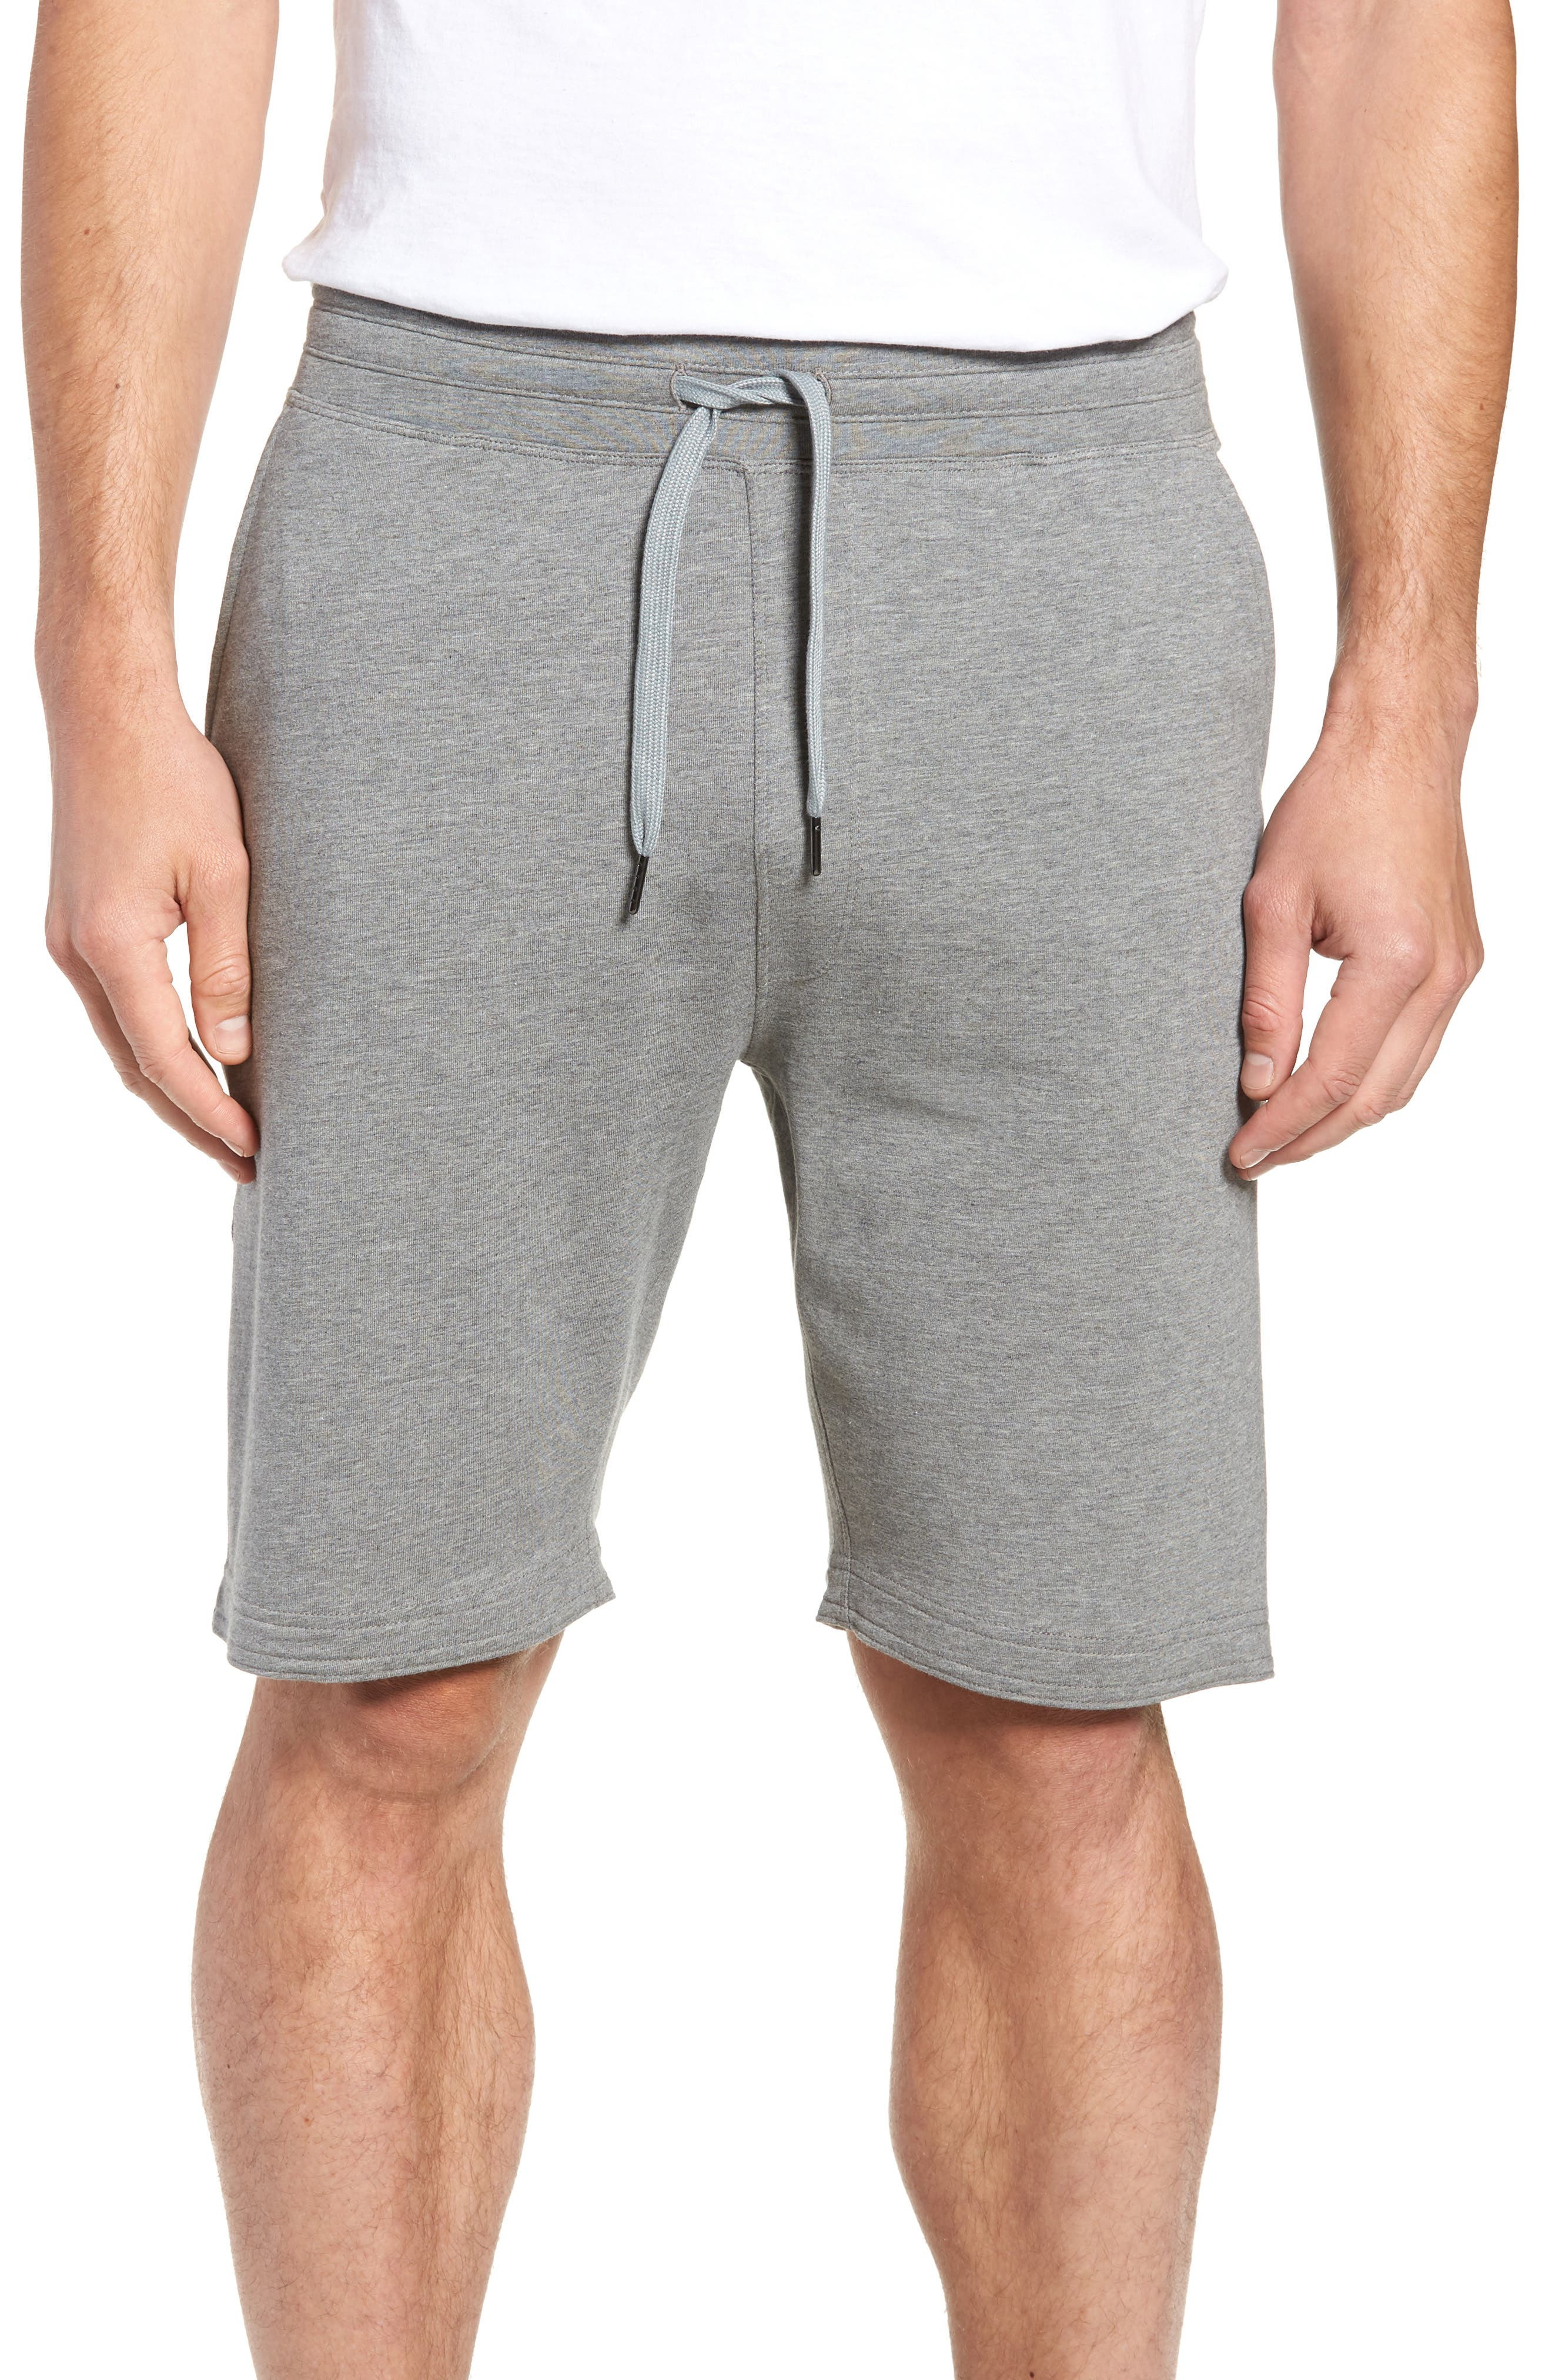 Legacy II Semi-Fitted Knit Athletic Shorts,                             Main thumbnail 1, color,                             HEATHER GRAY